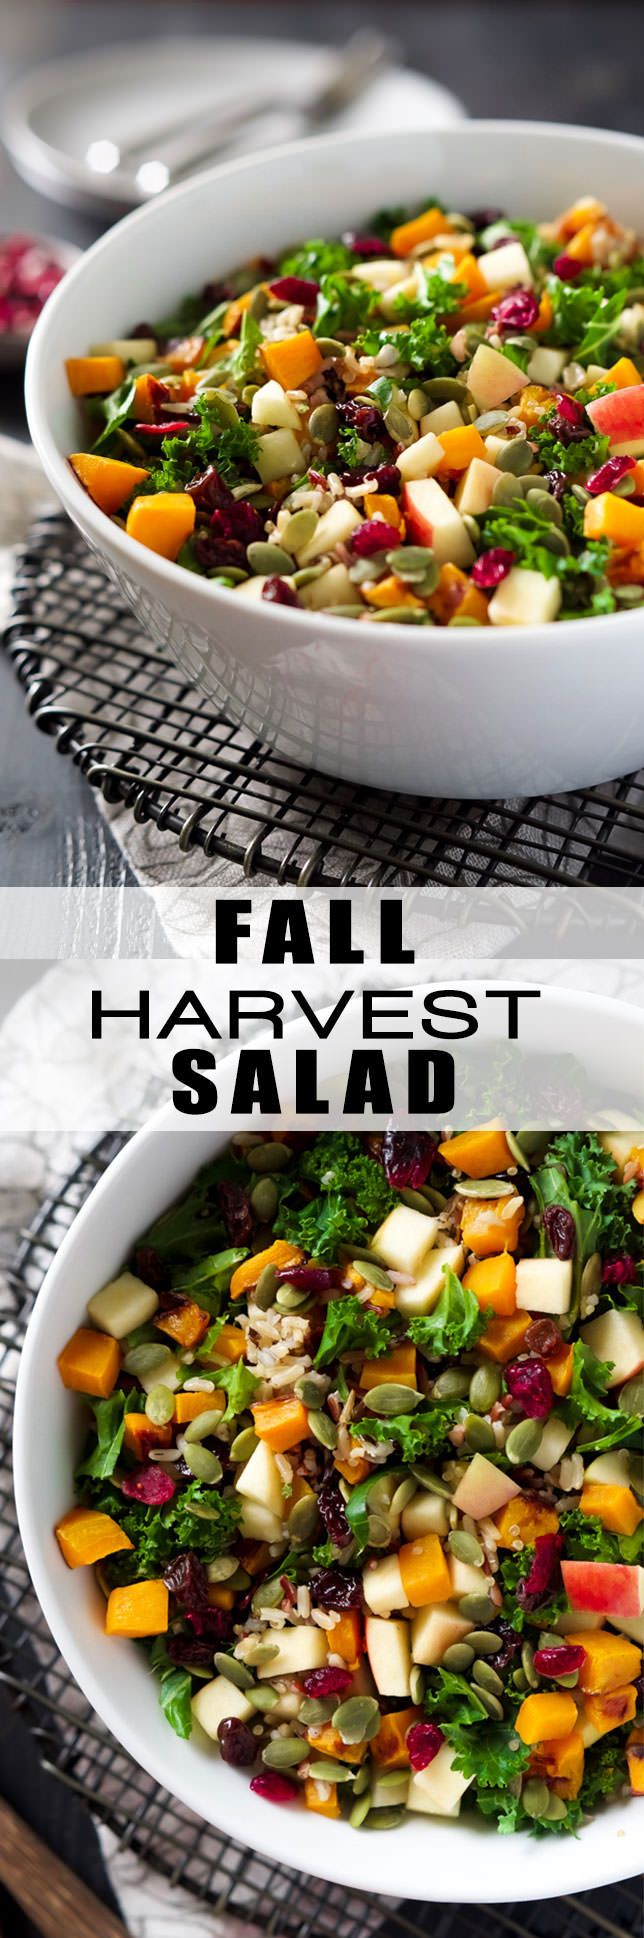 This Fall Harvest Salad is full of fall flavors; roasted butternut squash, tender wild rice, pepitas, apples, and hearty kale, with an apple cider dressing!